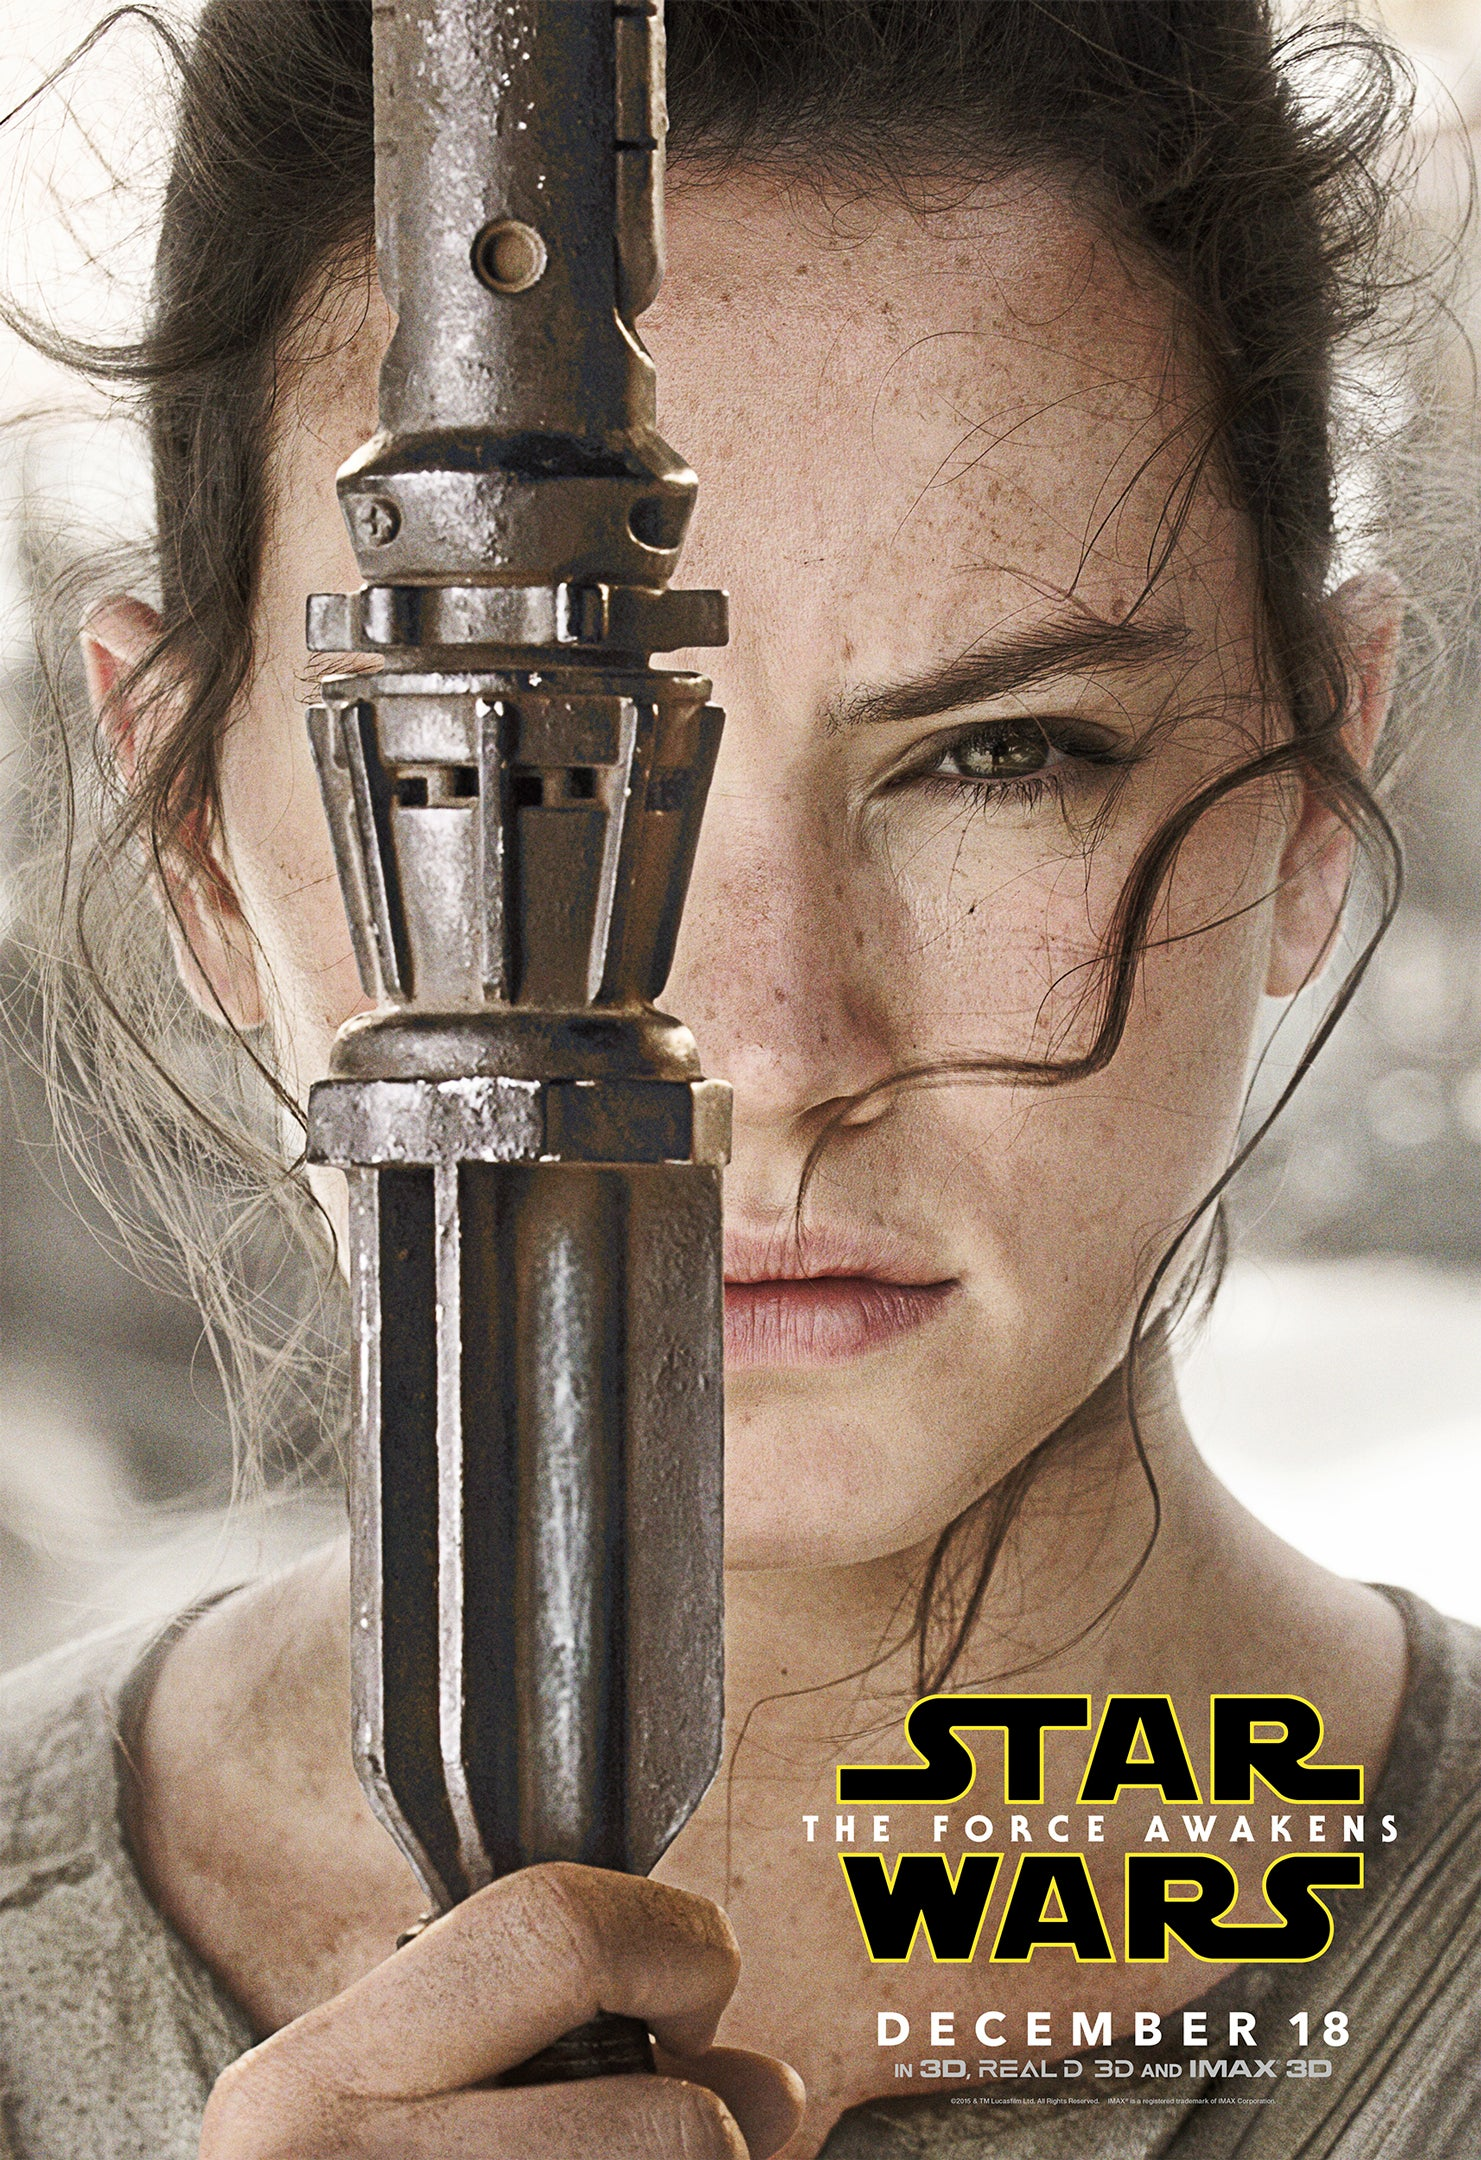 Rey, as played by Daisy Ridely